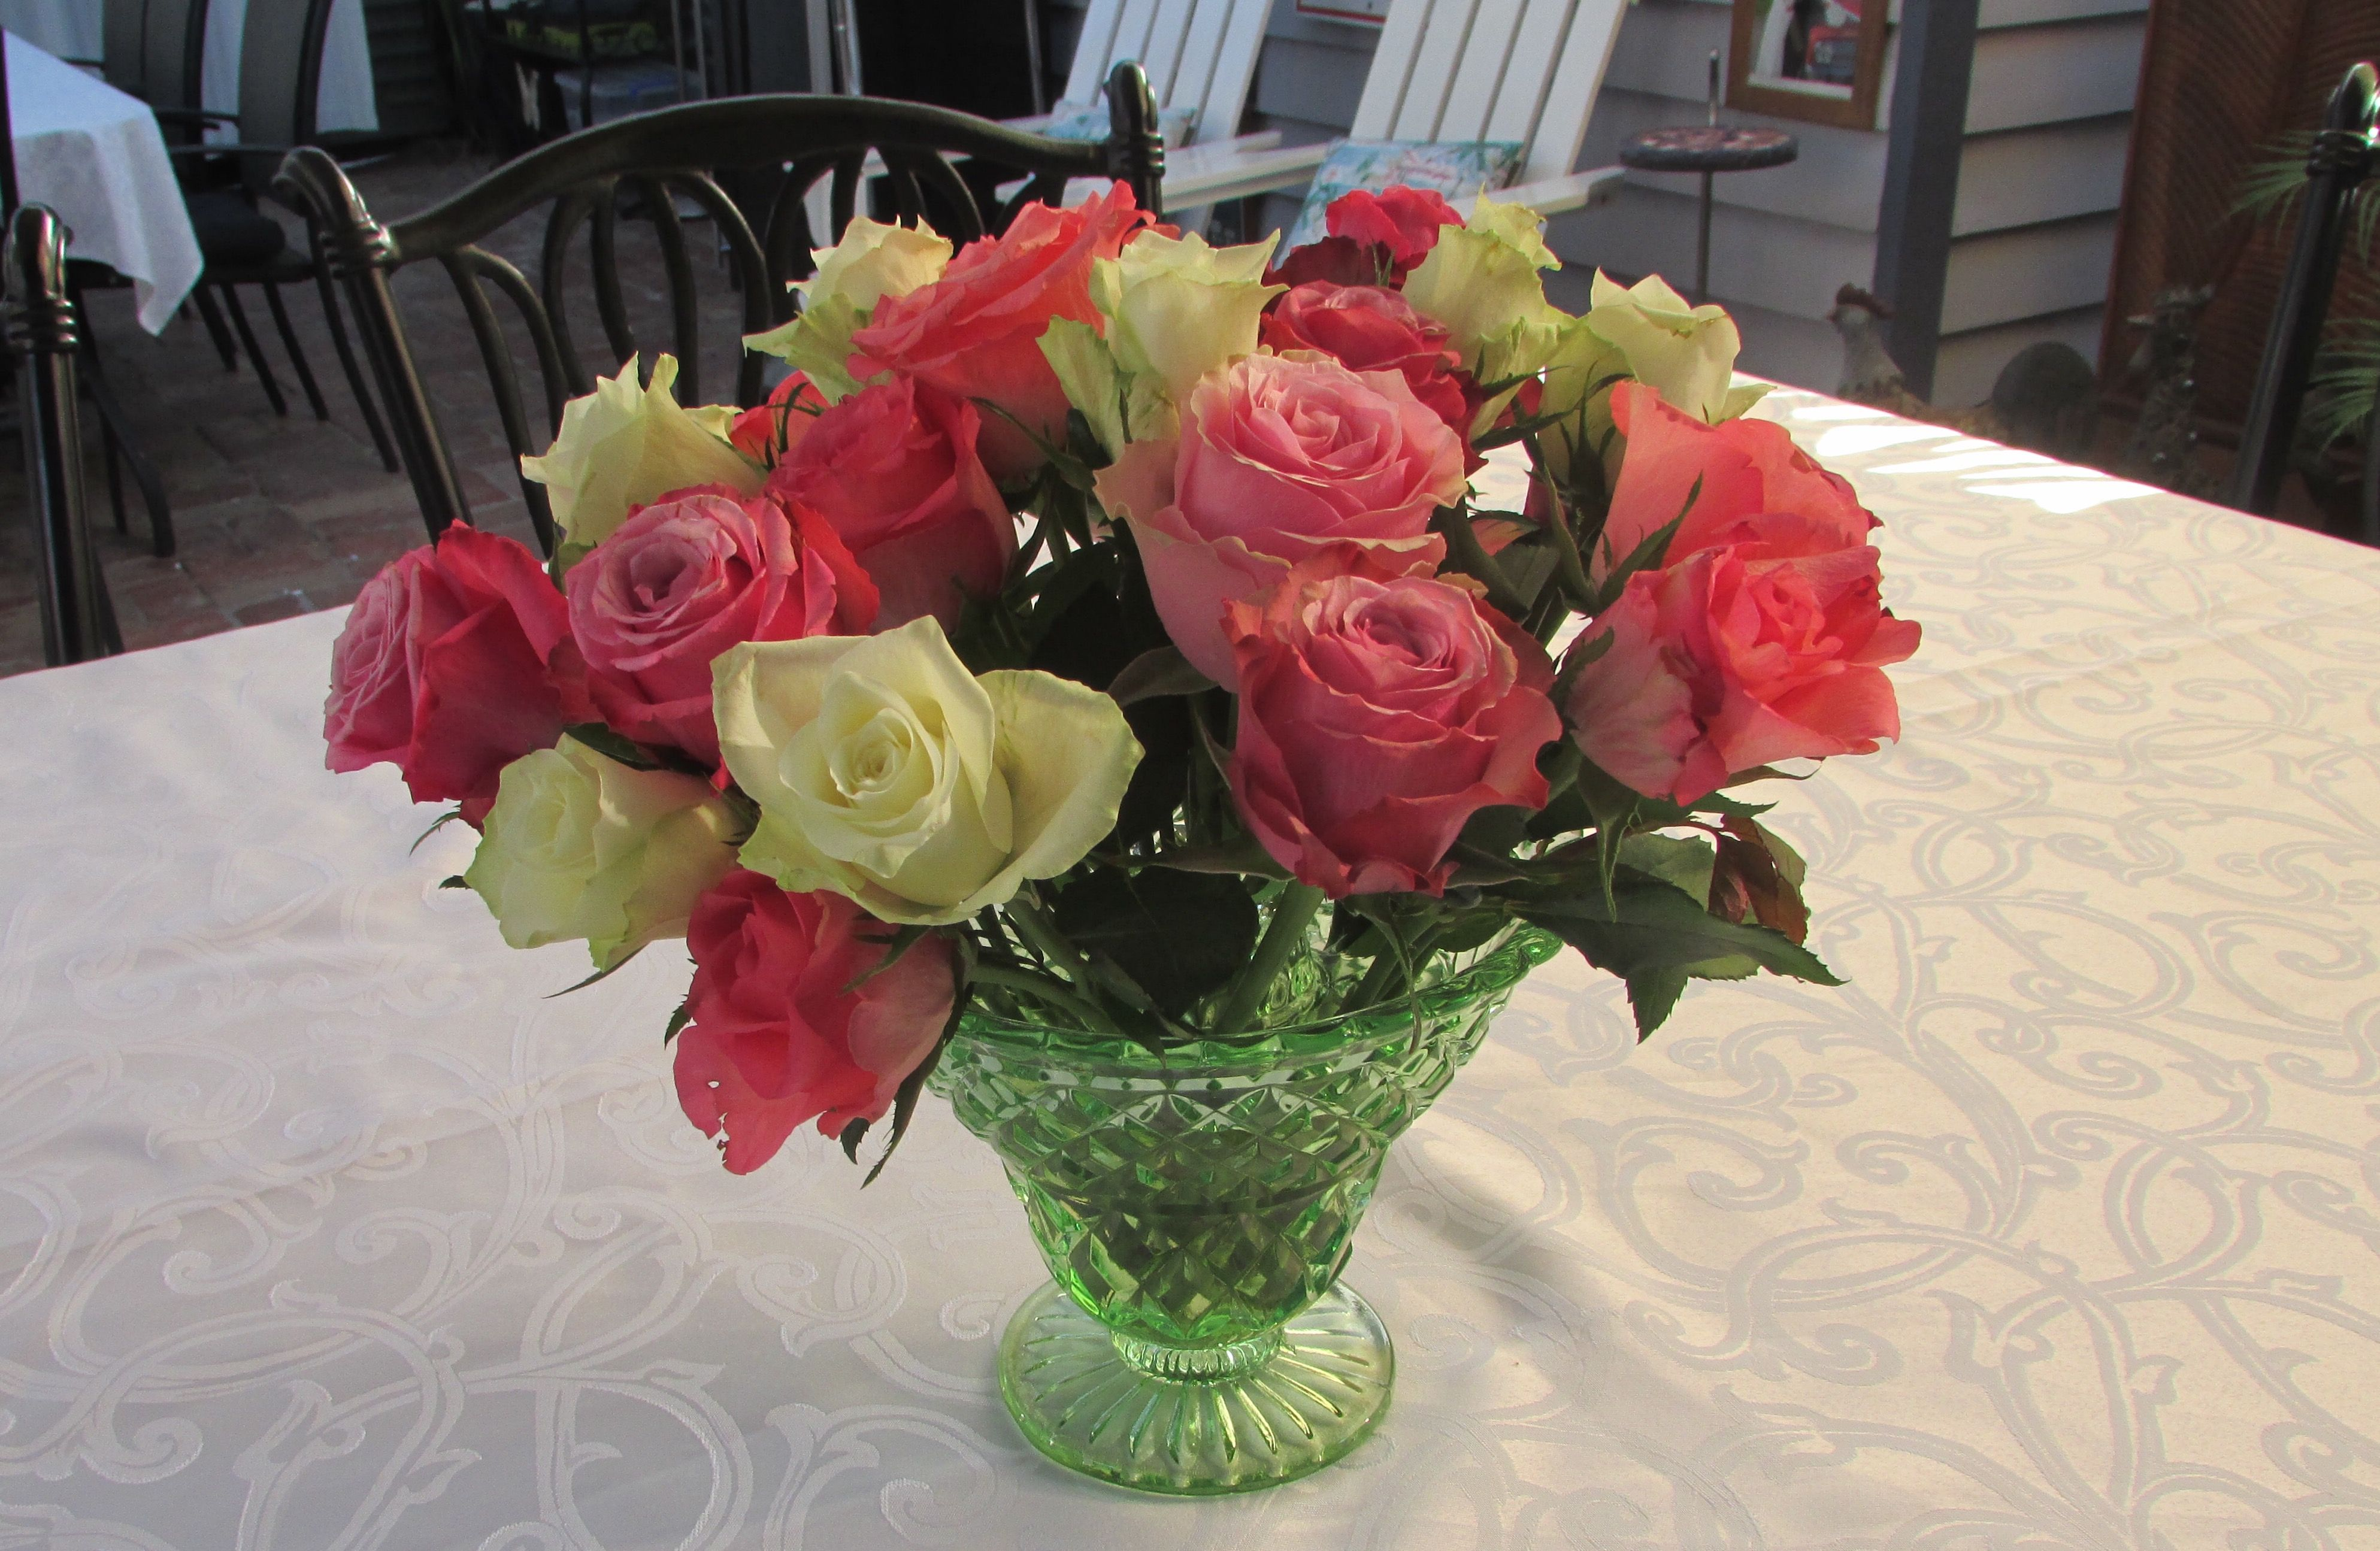 Celebrating A 90th Birthday I Used A Green Depression Glass That Was